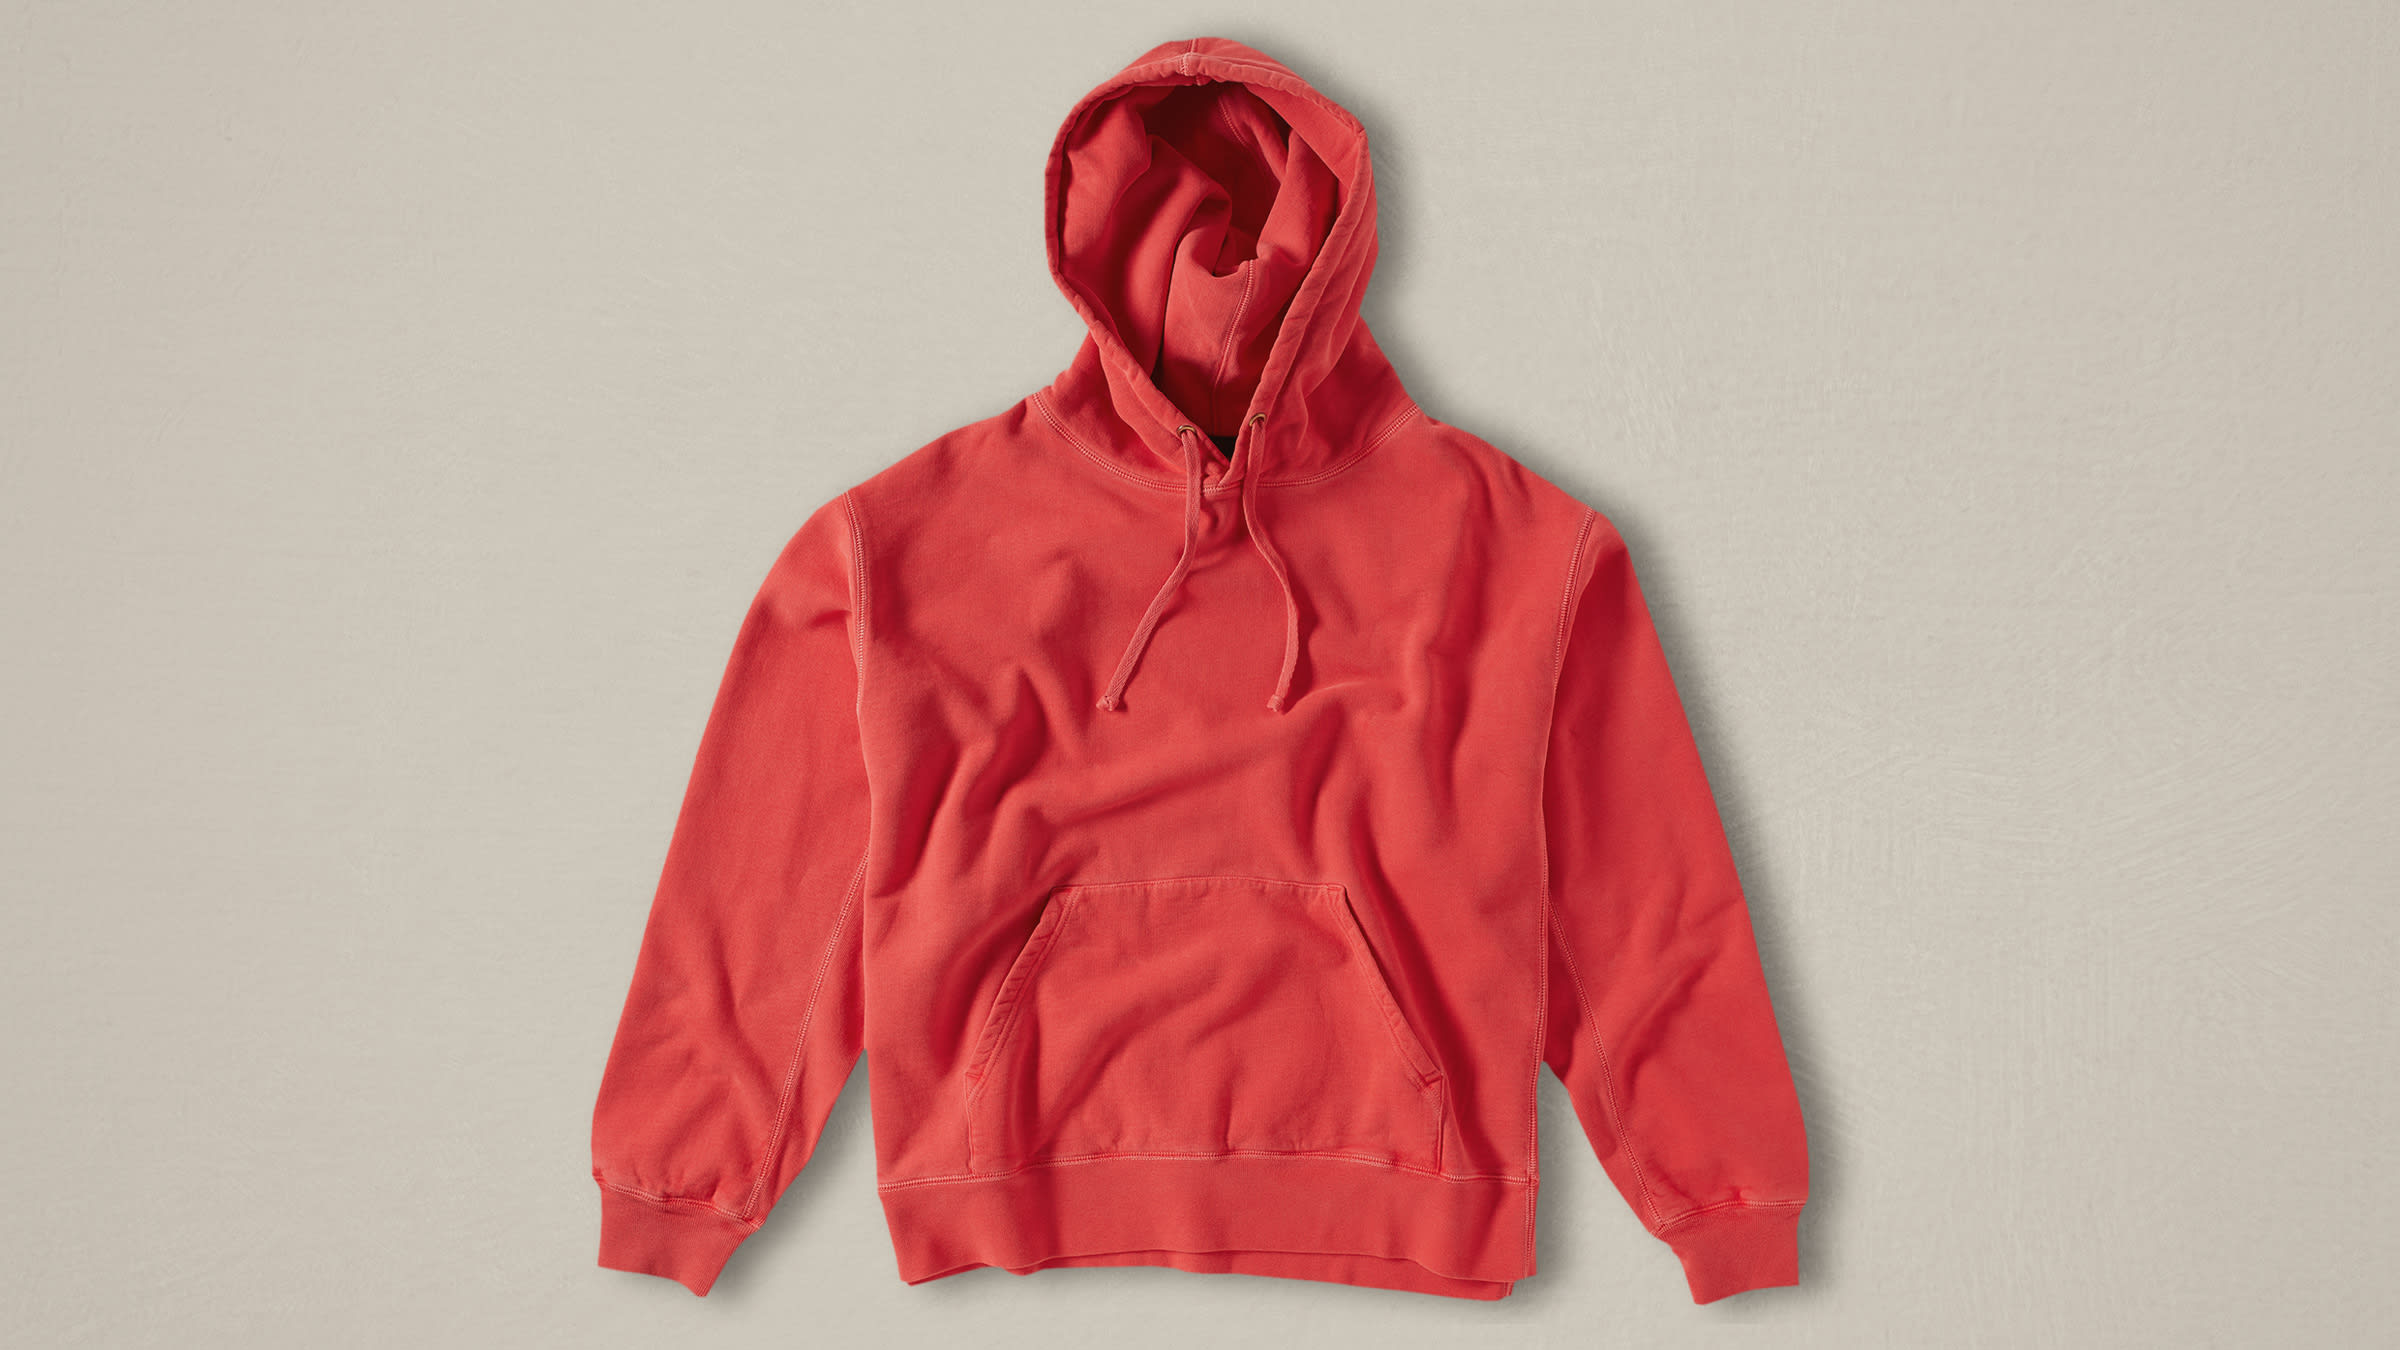 yeezy season 3 relaxed fit hoody fluoro red. Black Bedroom Furniture Sets. Home Design Ideas